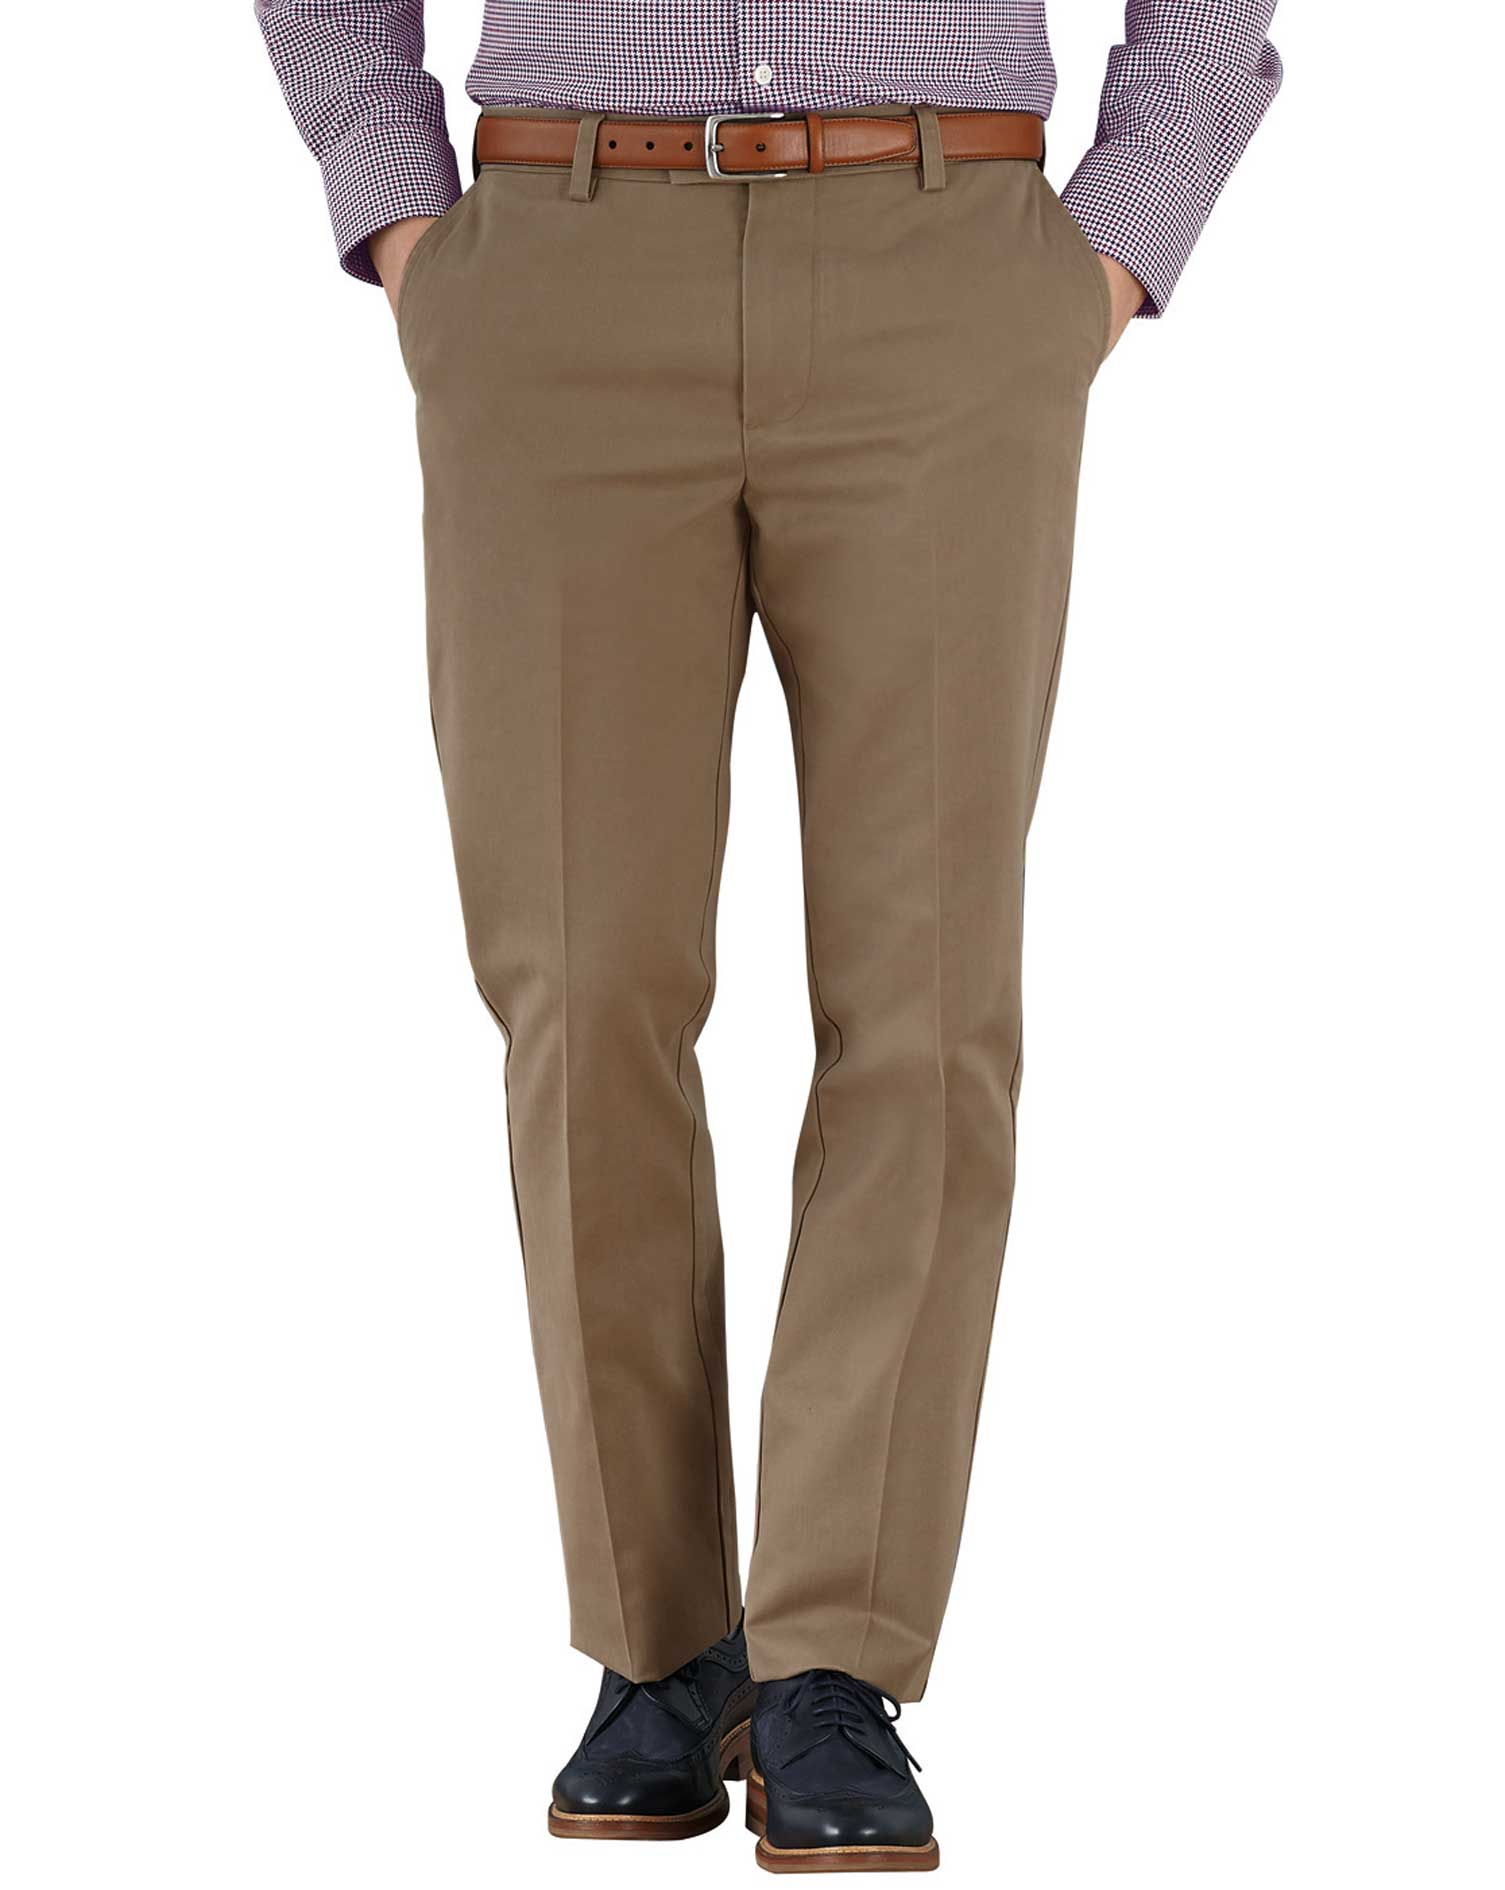 Tan Slim Fit Flat Front Non-Iron Cotton Chino Trousers Size W32 L38 by Charles Tyrwhitt